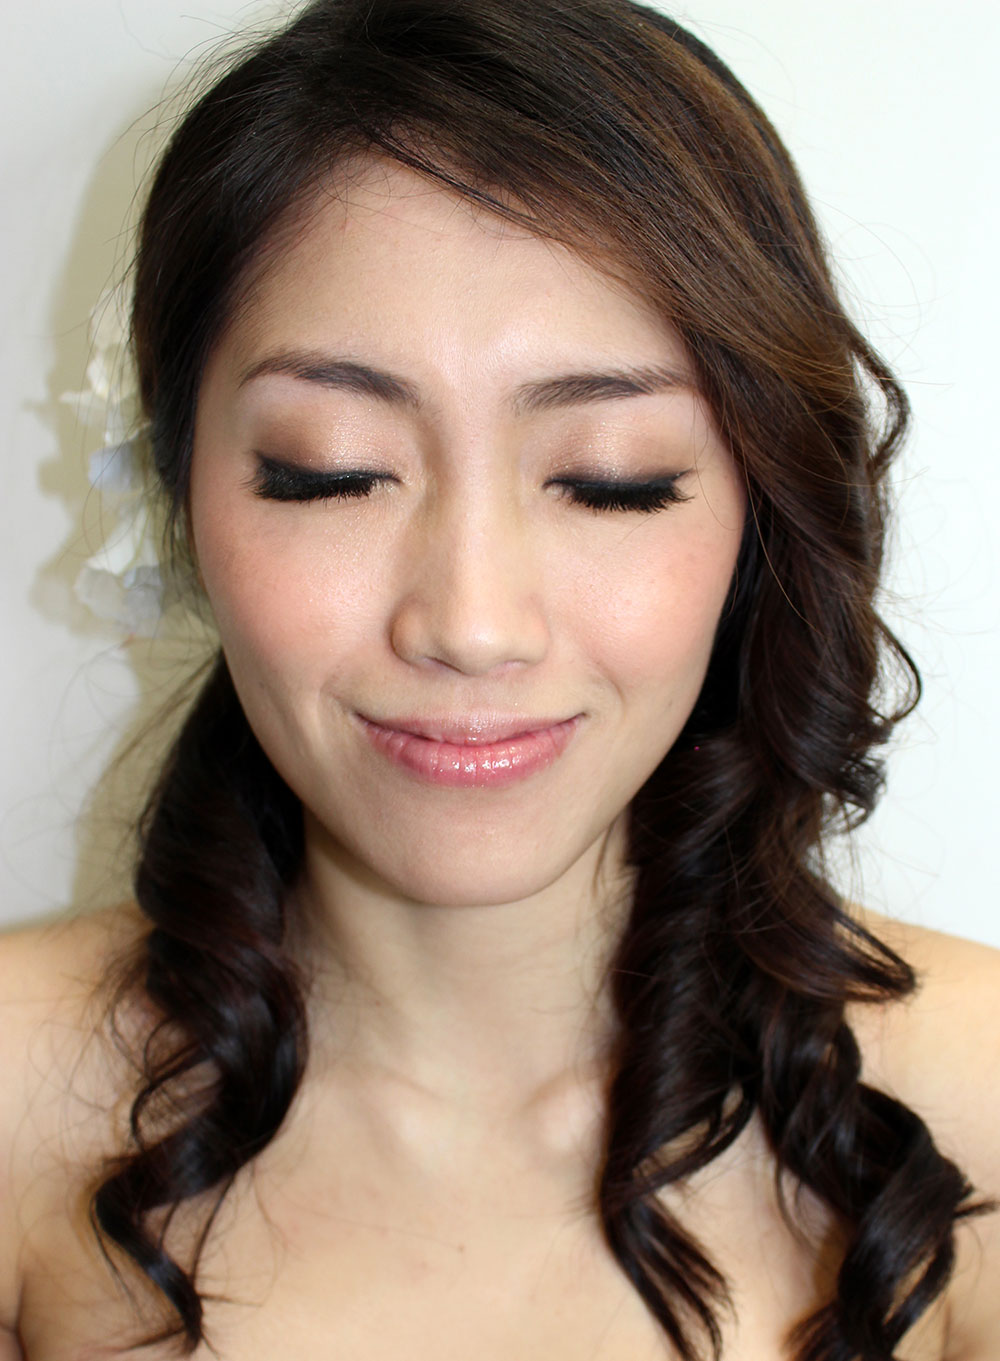 Natural Wedding Makeup Asian : FOTD: Asian Bridal Makeup Shoot With Anita - Makeup For Life